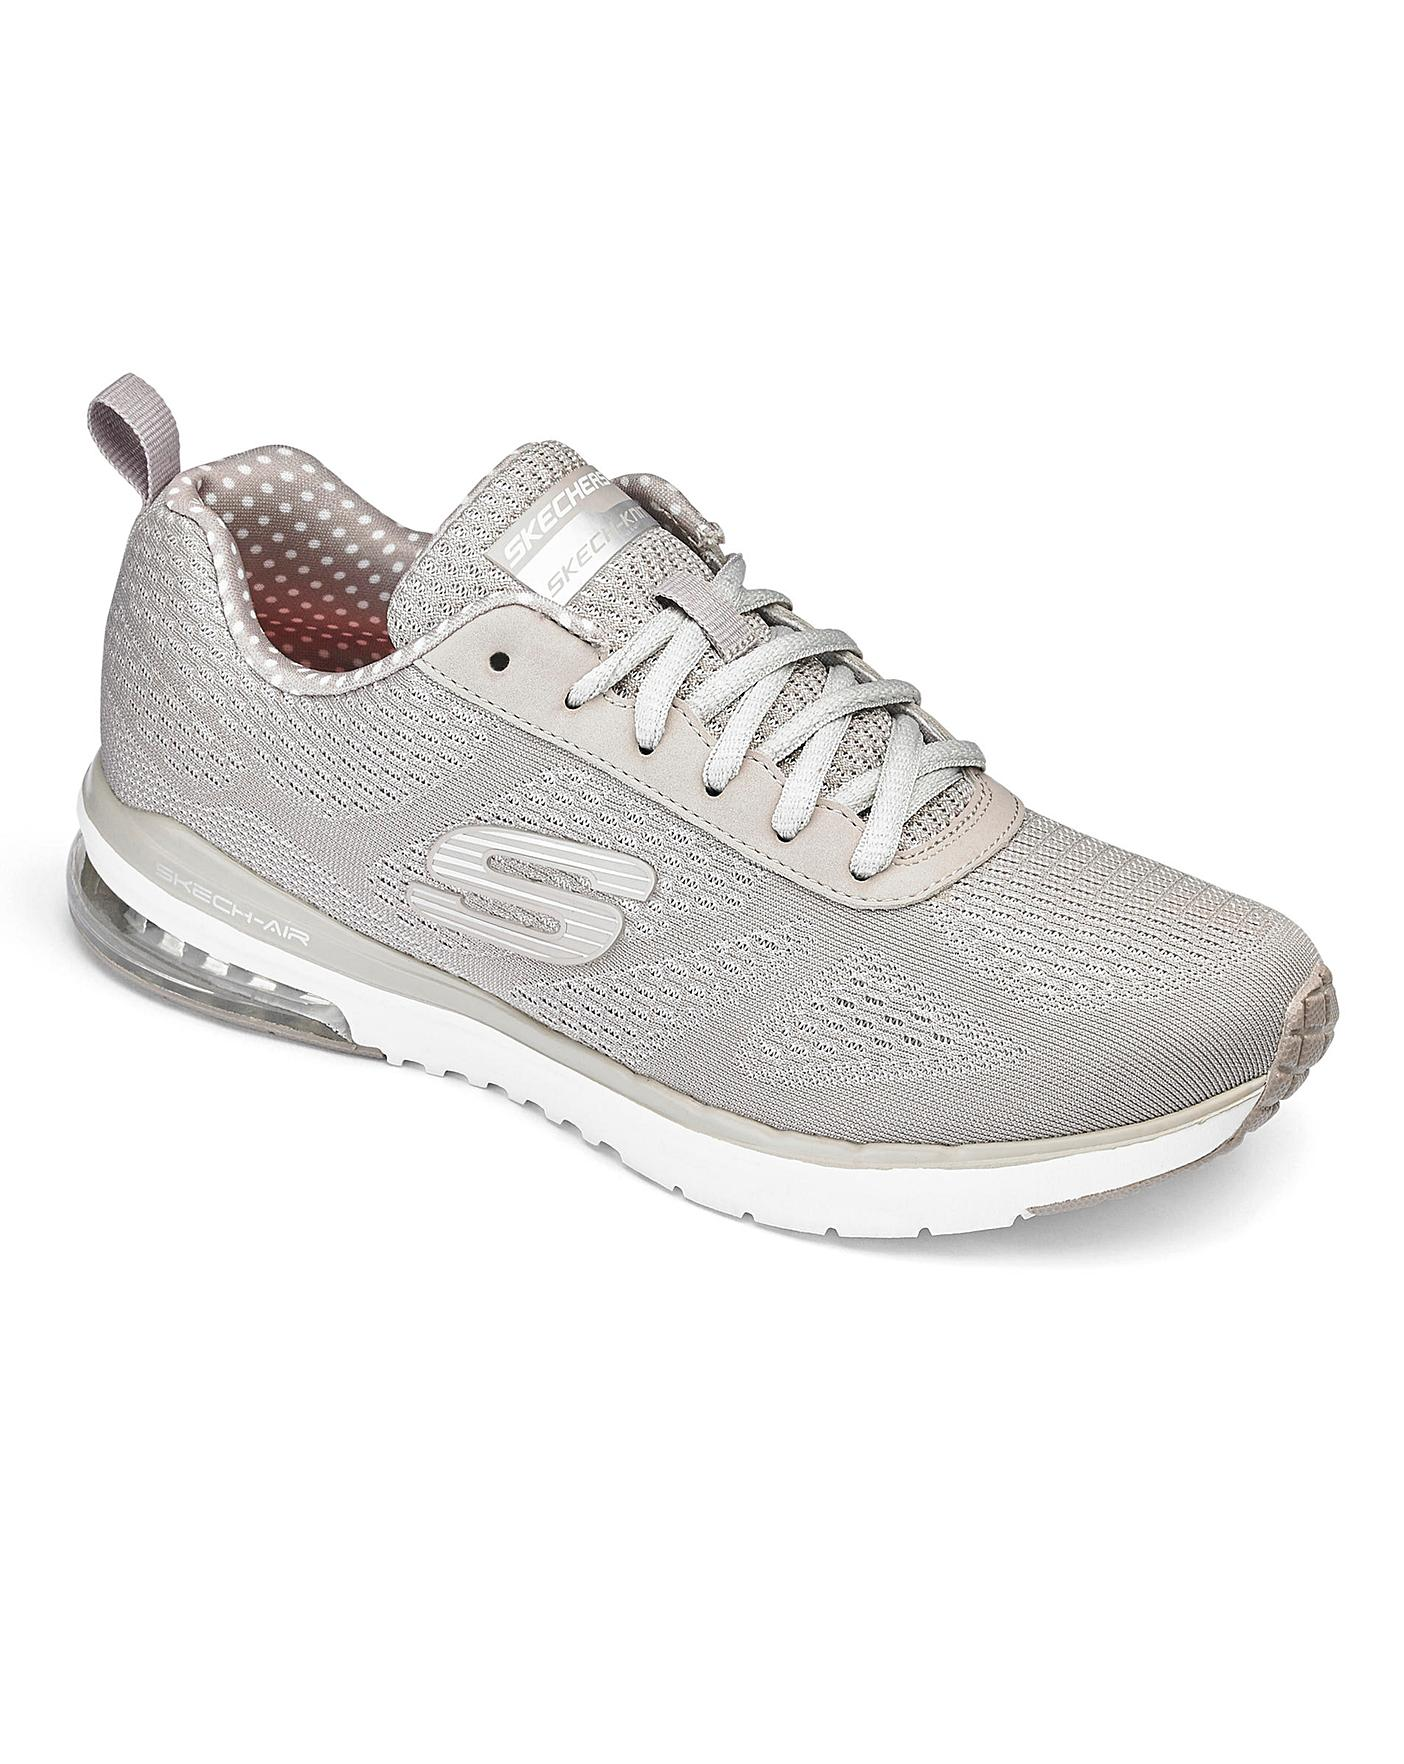 incredible prices arrives online here Skechers Skech-Air Infinity Trainers